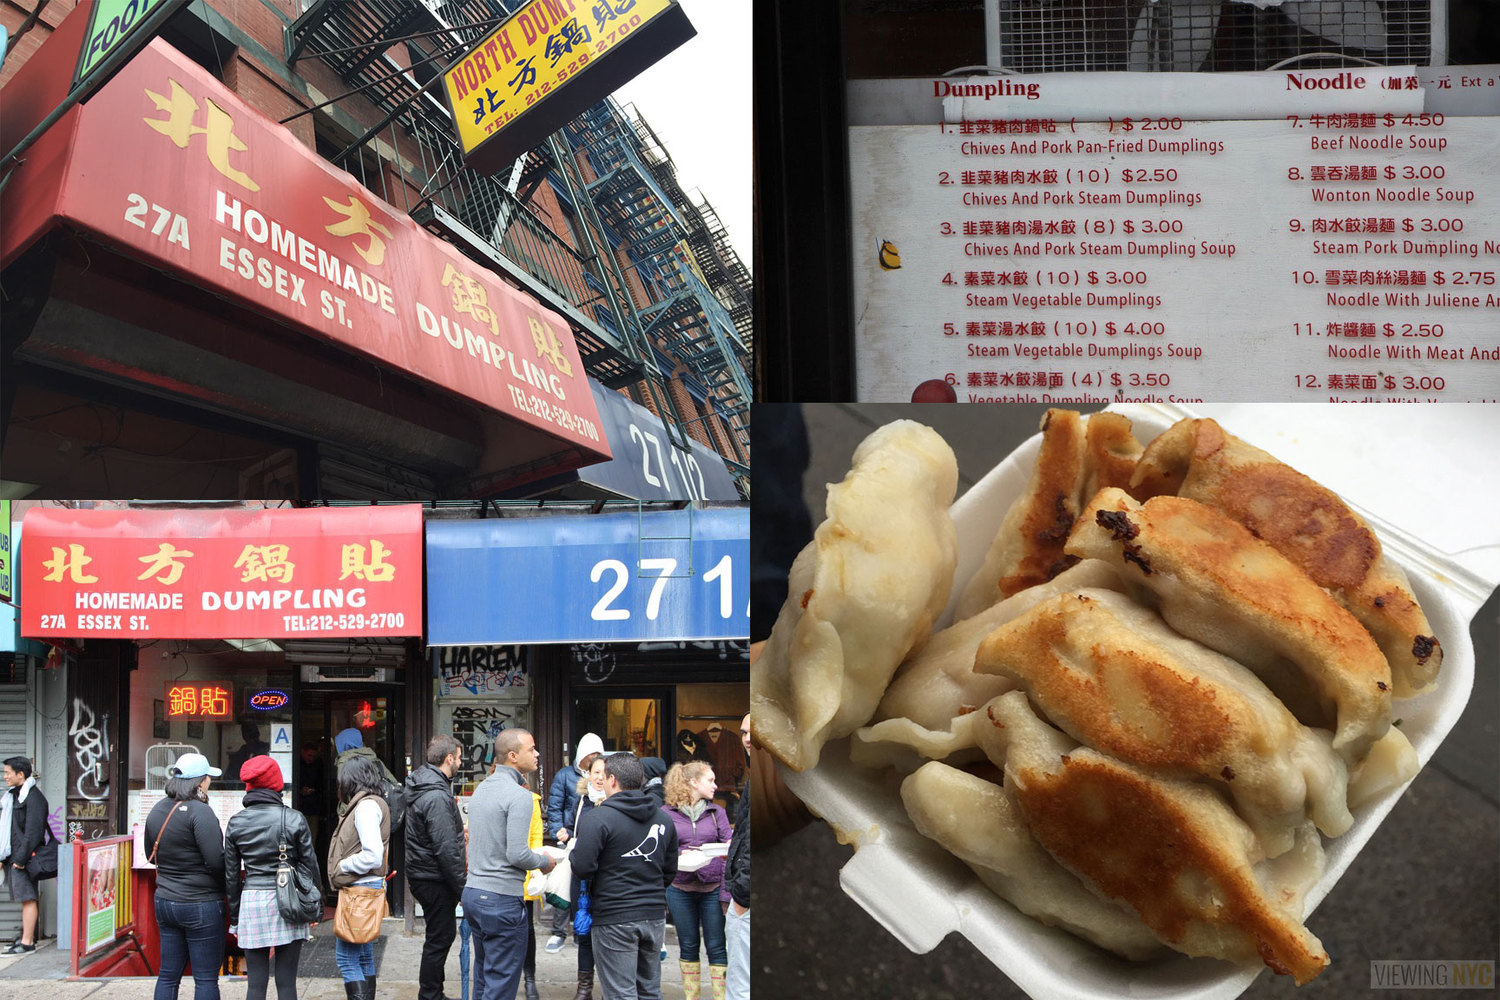 "China North Dumpling | Check out Viewing NYC for more info on the 2015 Chinatown Dumpling Crawl and to see who won!  <a href=""https://viewing.nyc/the-best-dumpling-in-the-2015-viewing-nyc-chinatown-dumpling-crawl-is/"" rel=""nofollow"">viewing.nyc/the-best-dumpling-in-the-2015-viewing-nyc-chi...</a>"